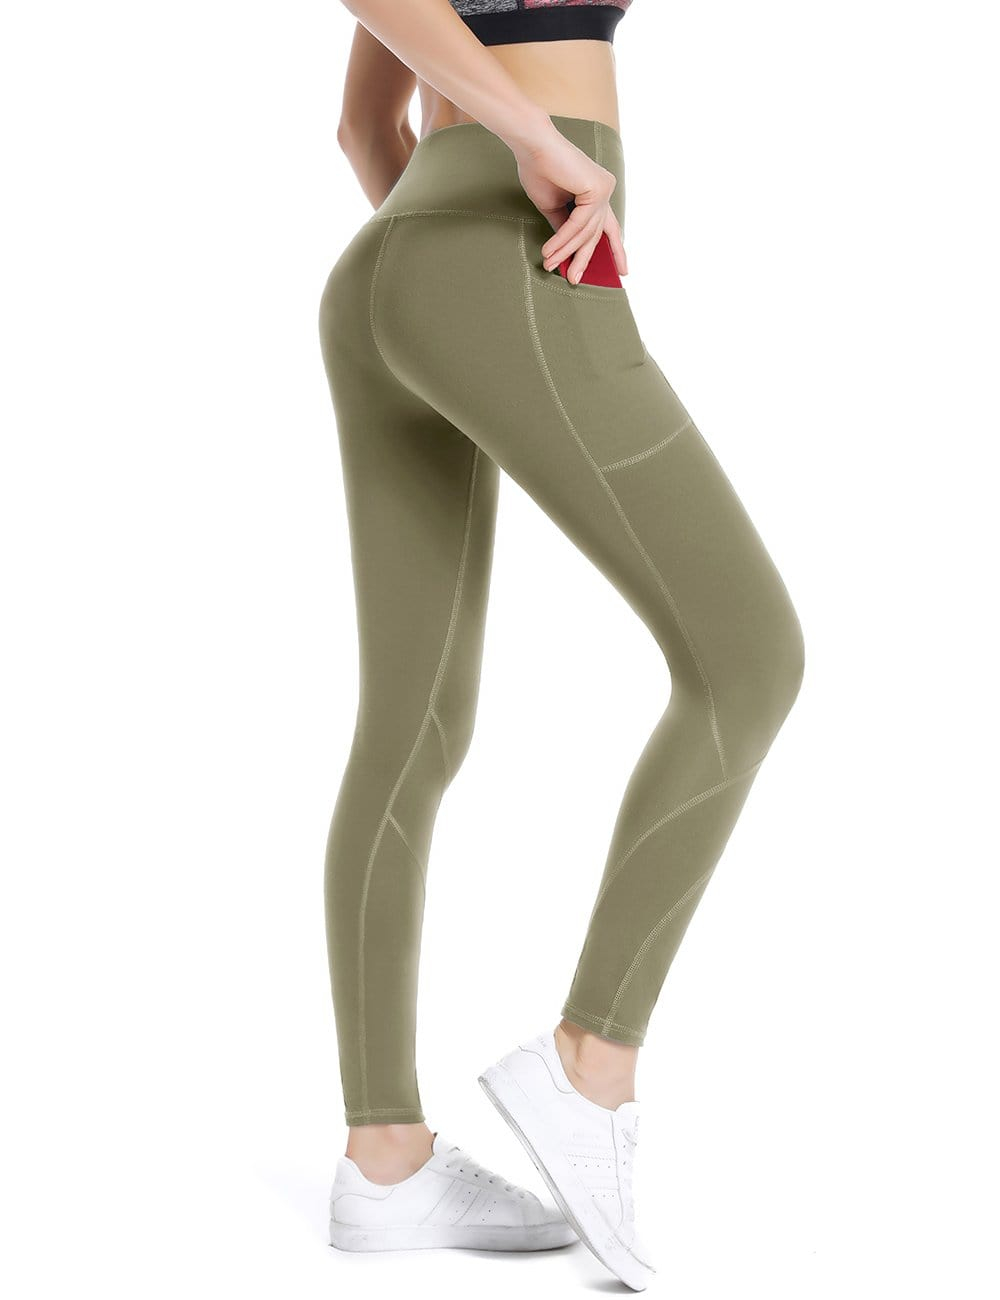 Jogger Yoga Pants - ALONGFIT